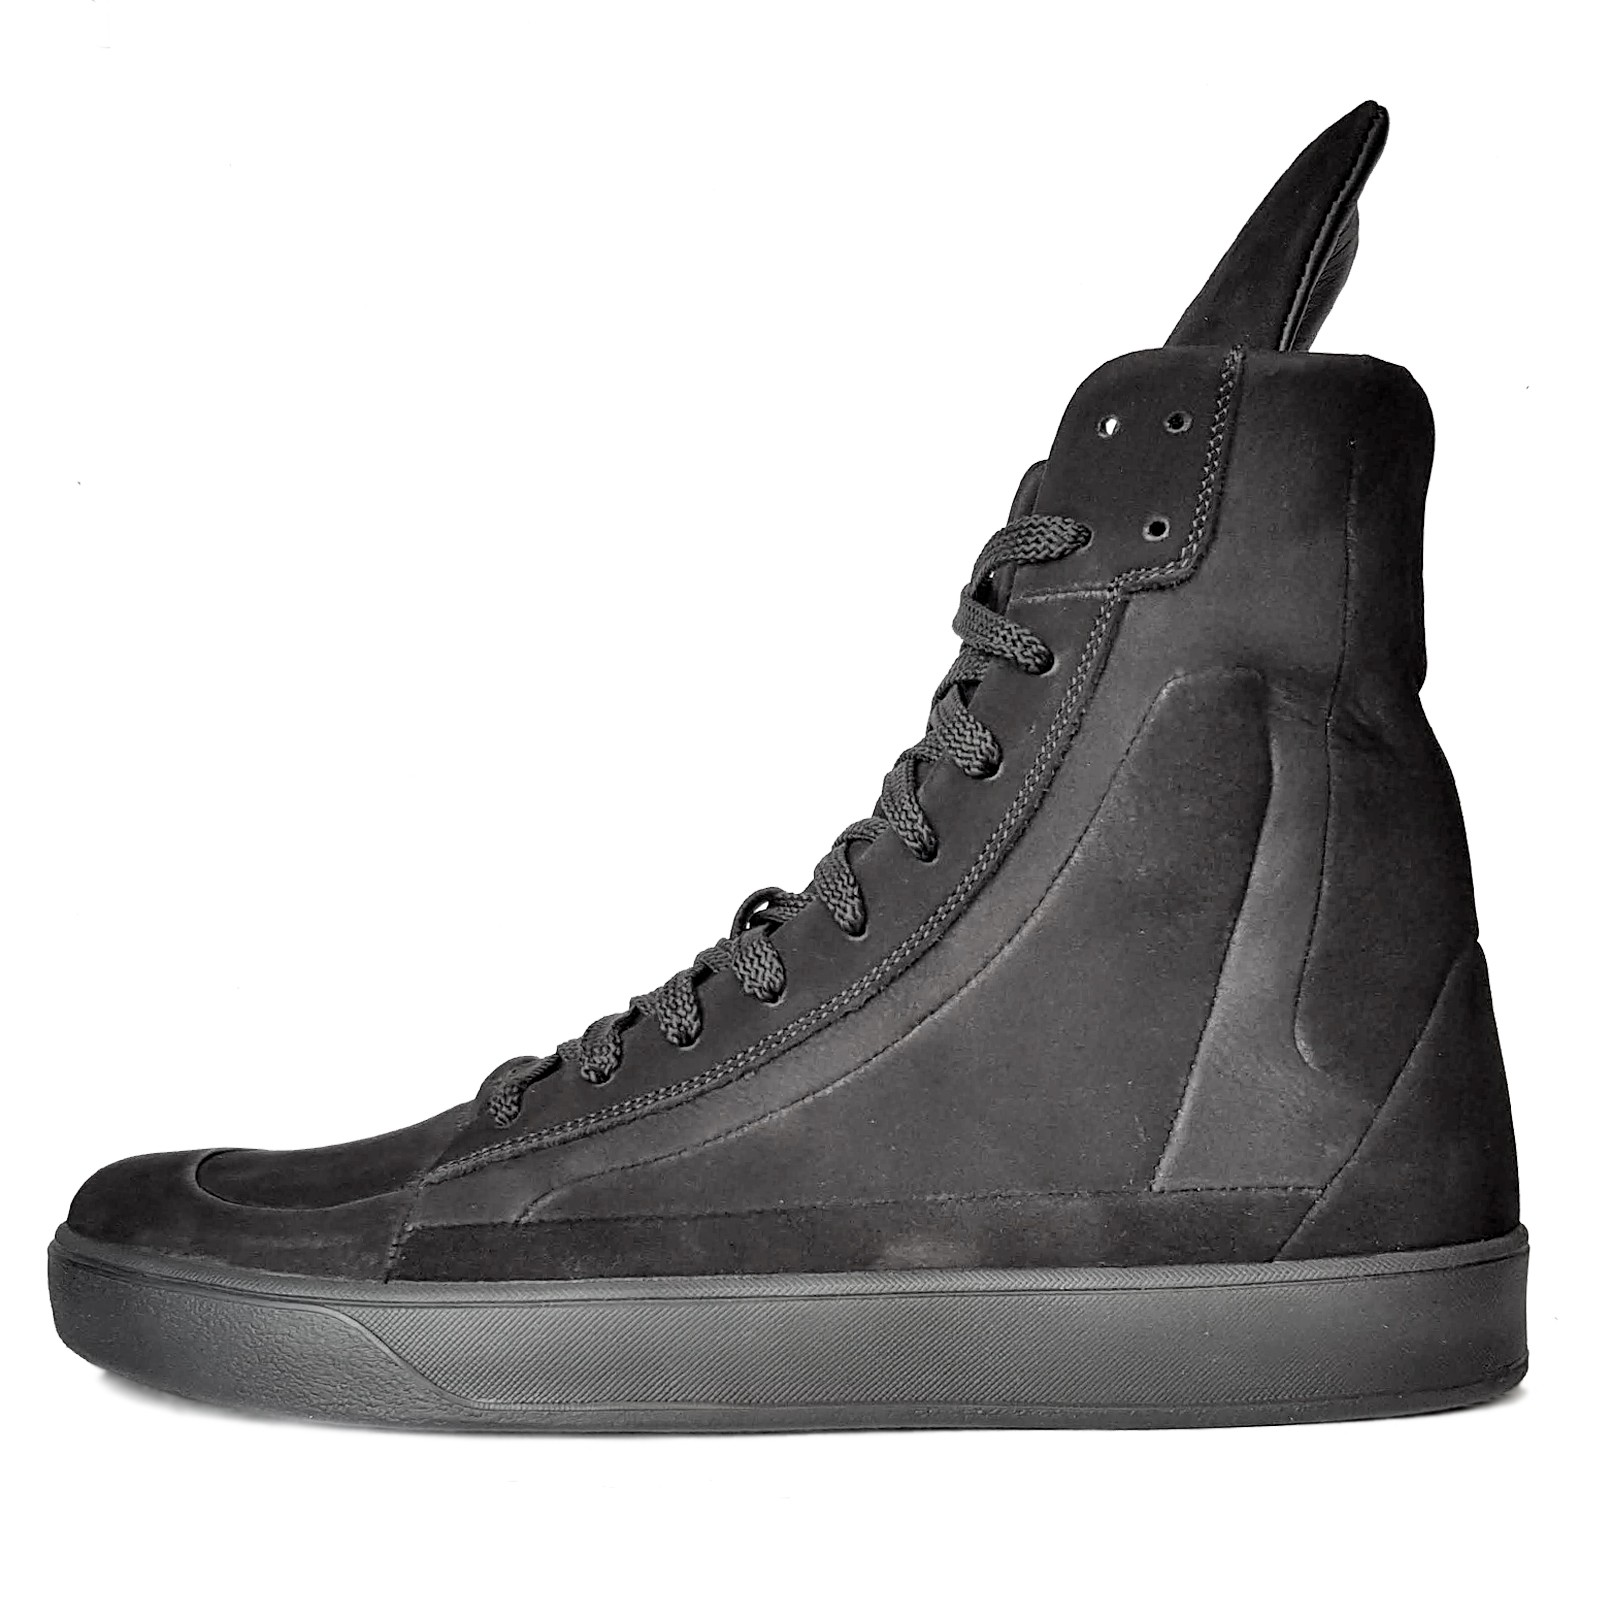 Men's high-top lace-up nubuck sneakers